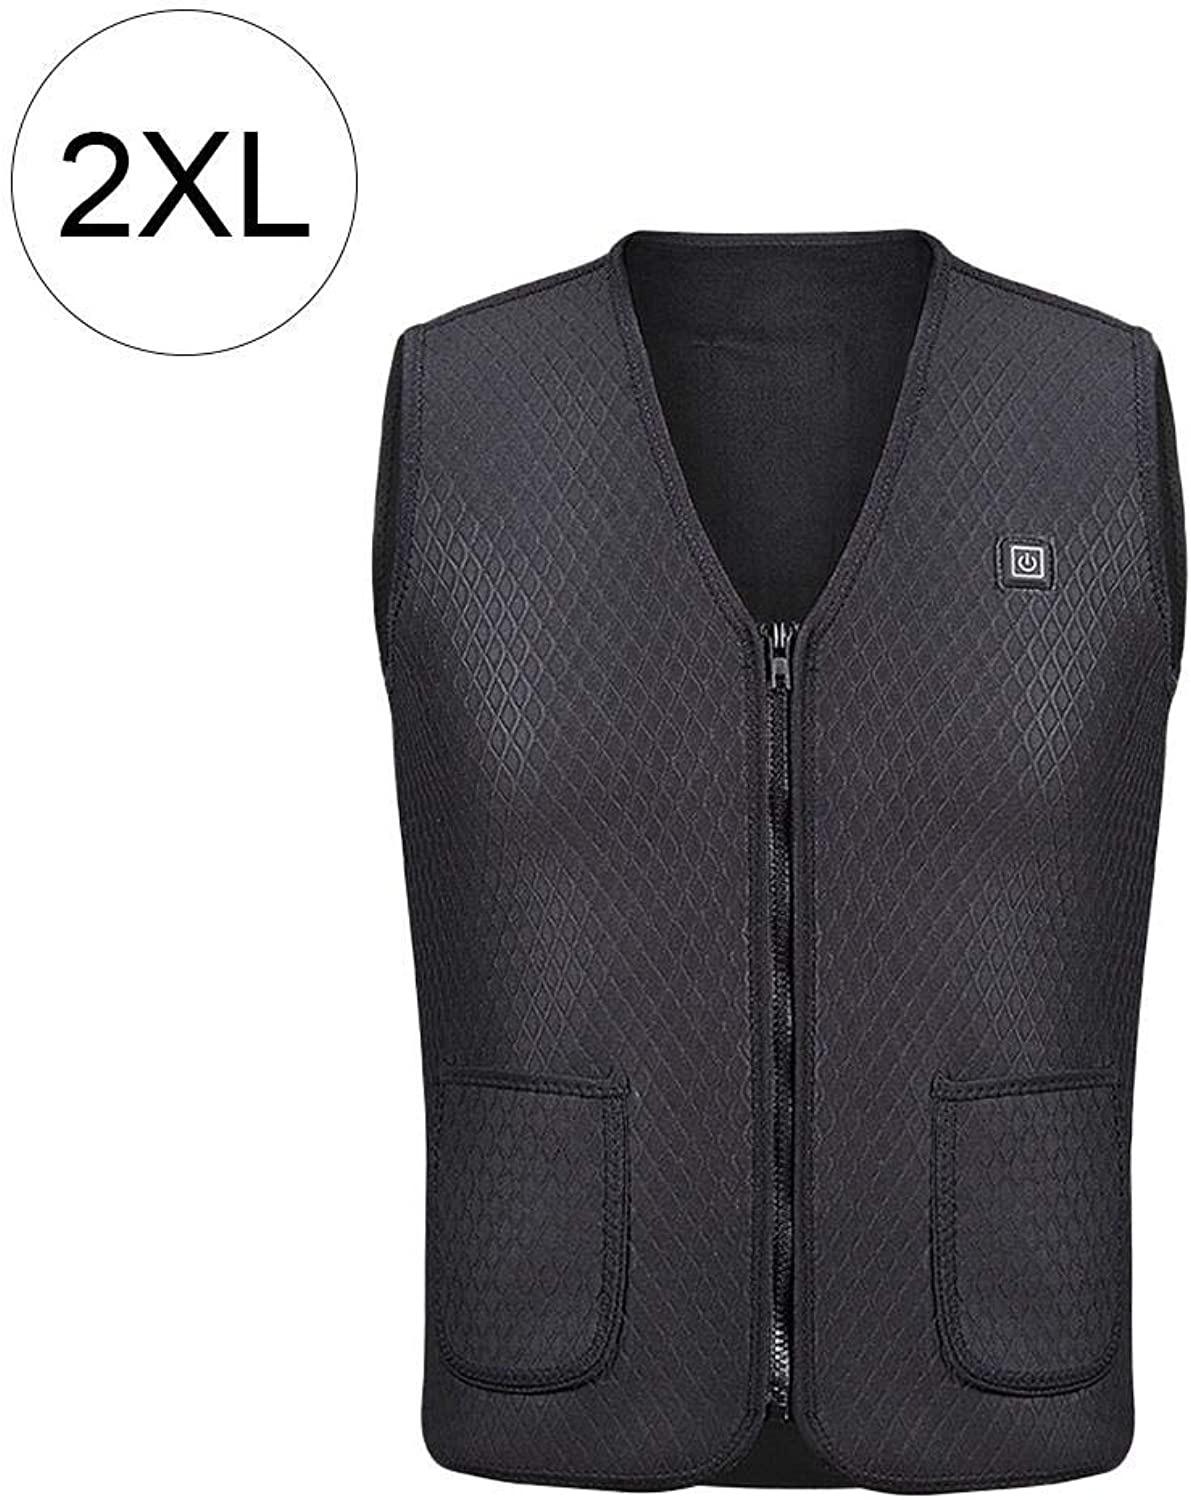 Jannyshop Insulated Heated Vest with USB Charging for Outdoor Riding Skiing Fishing Black